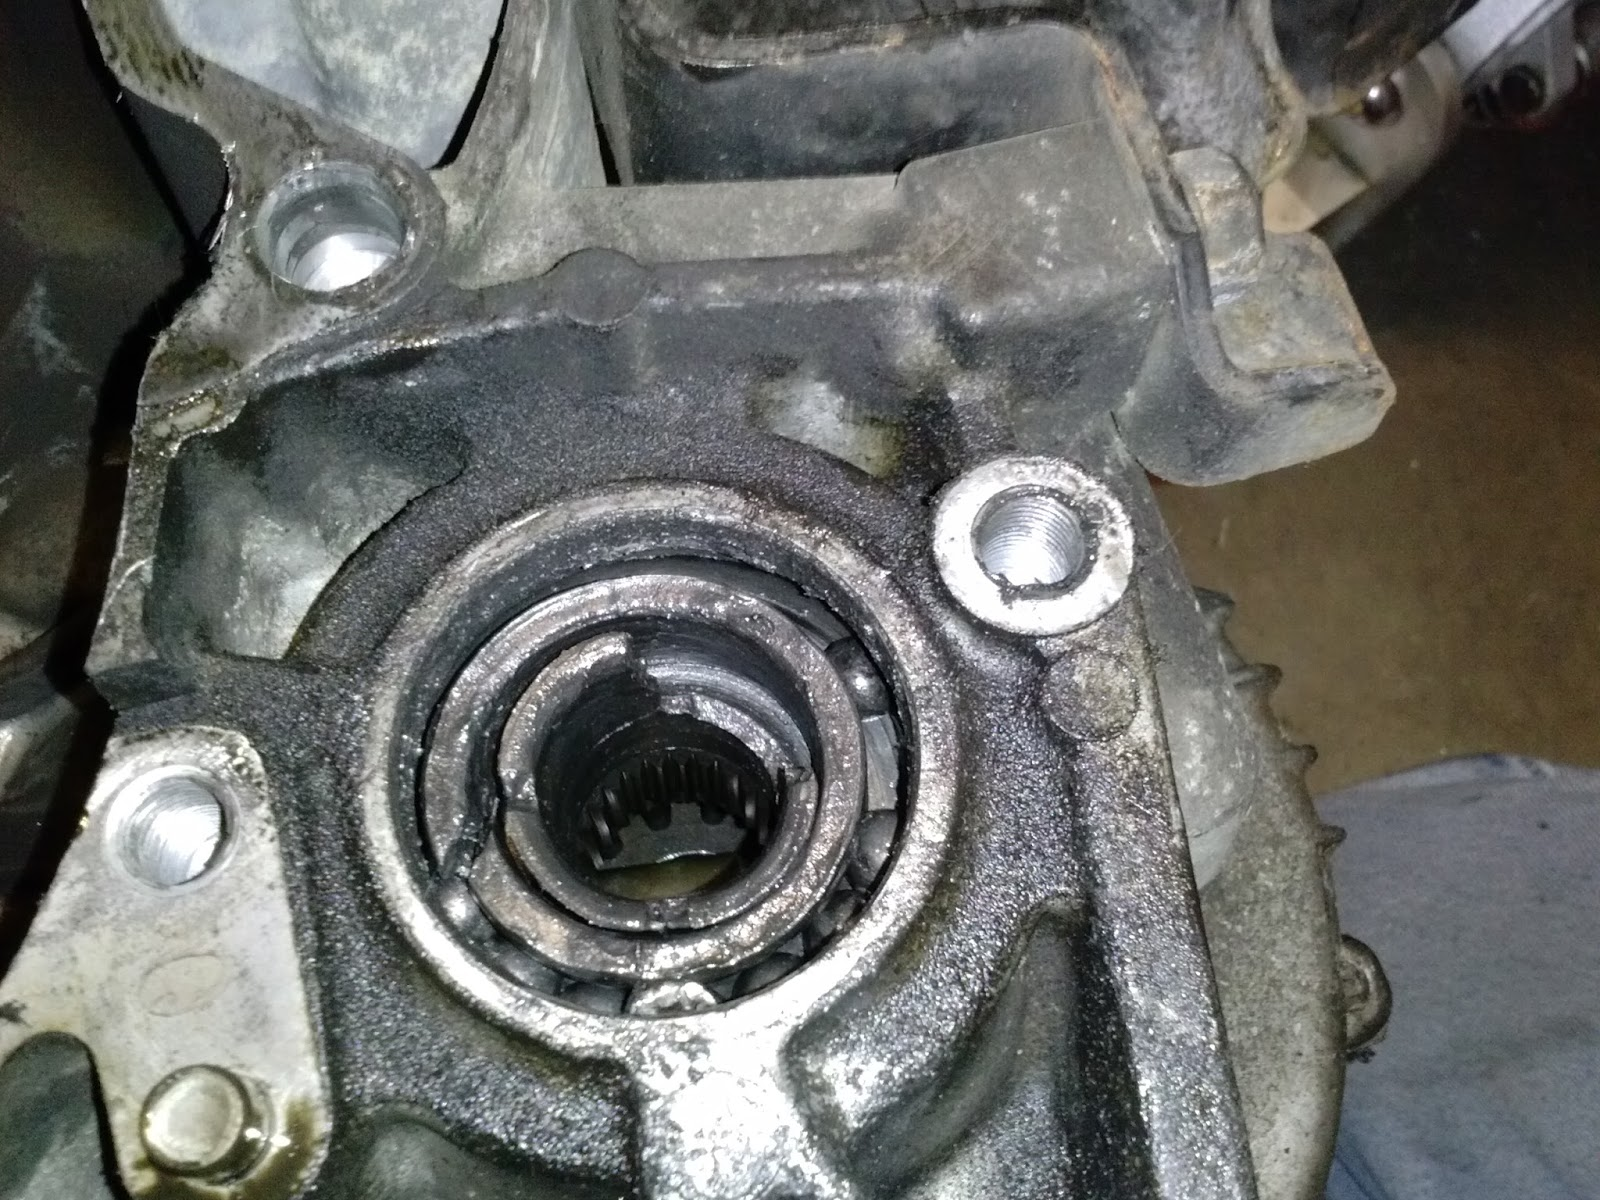 After I got the transmission out, I saw the reason the seal was dislodged.  The output bearing on the front differential was destroyed.